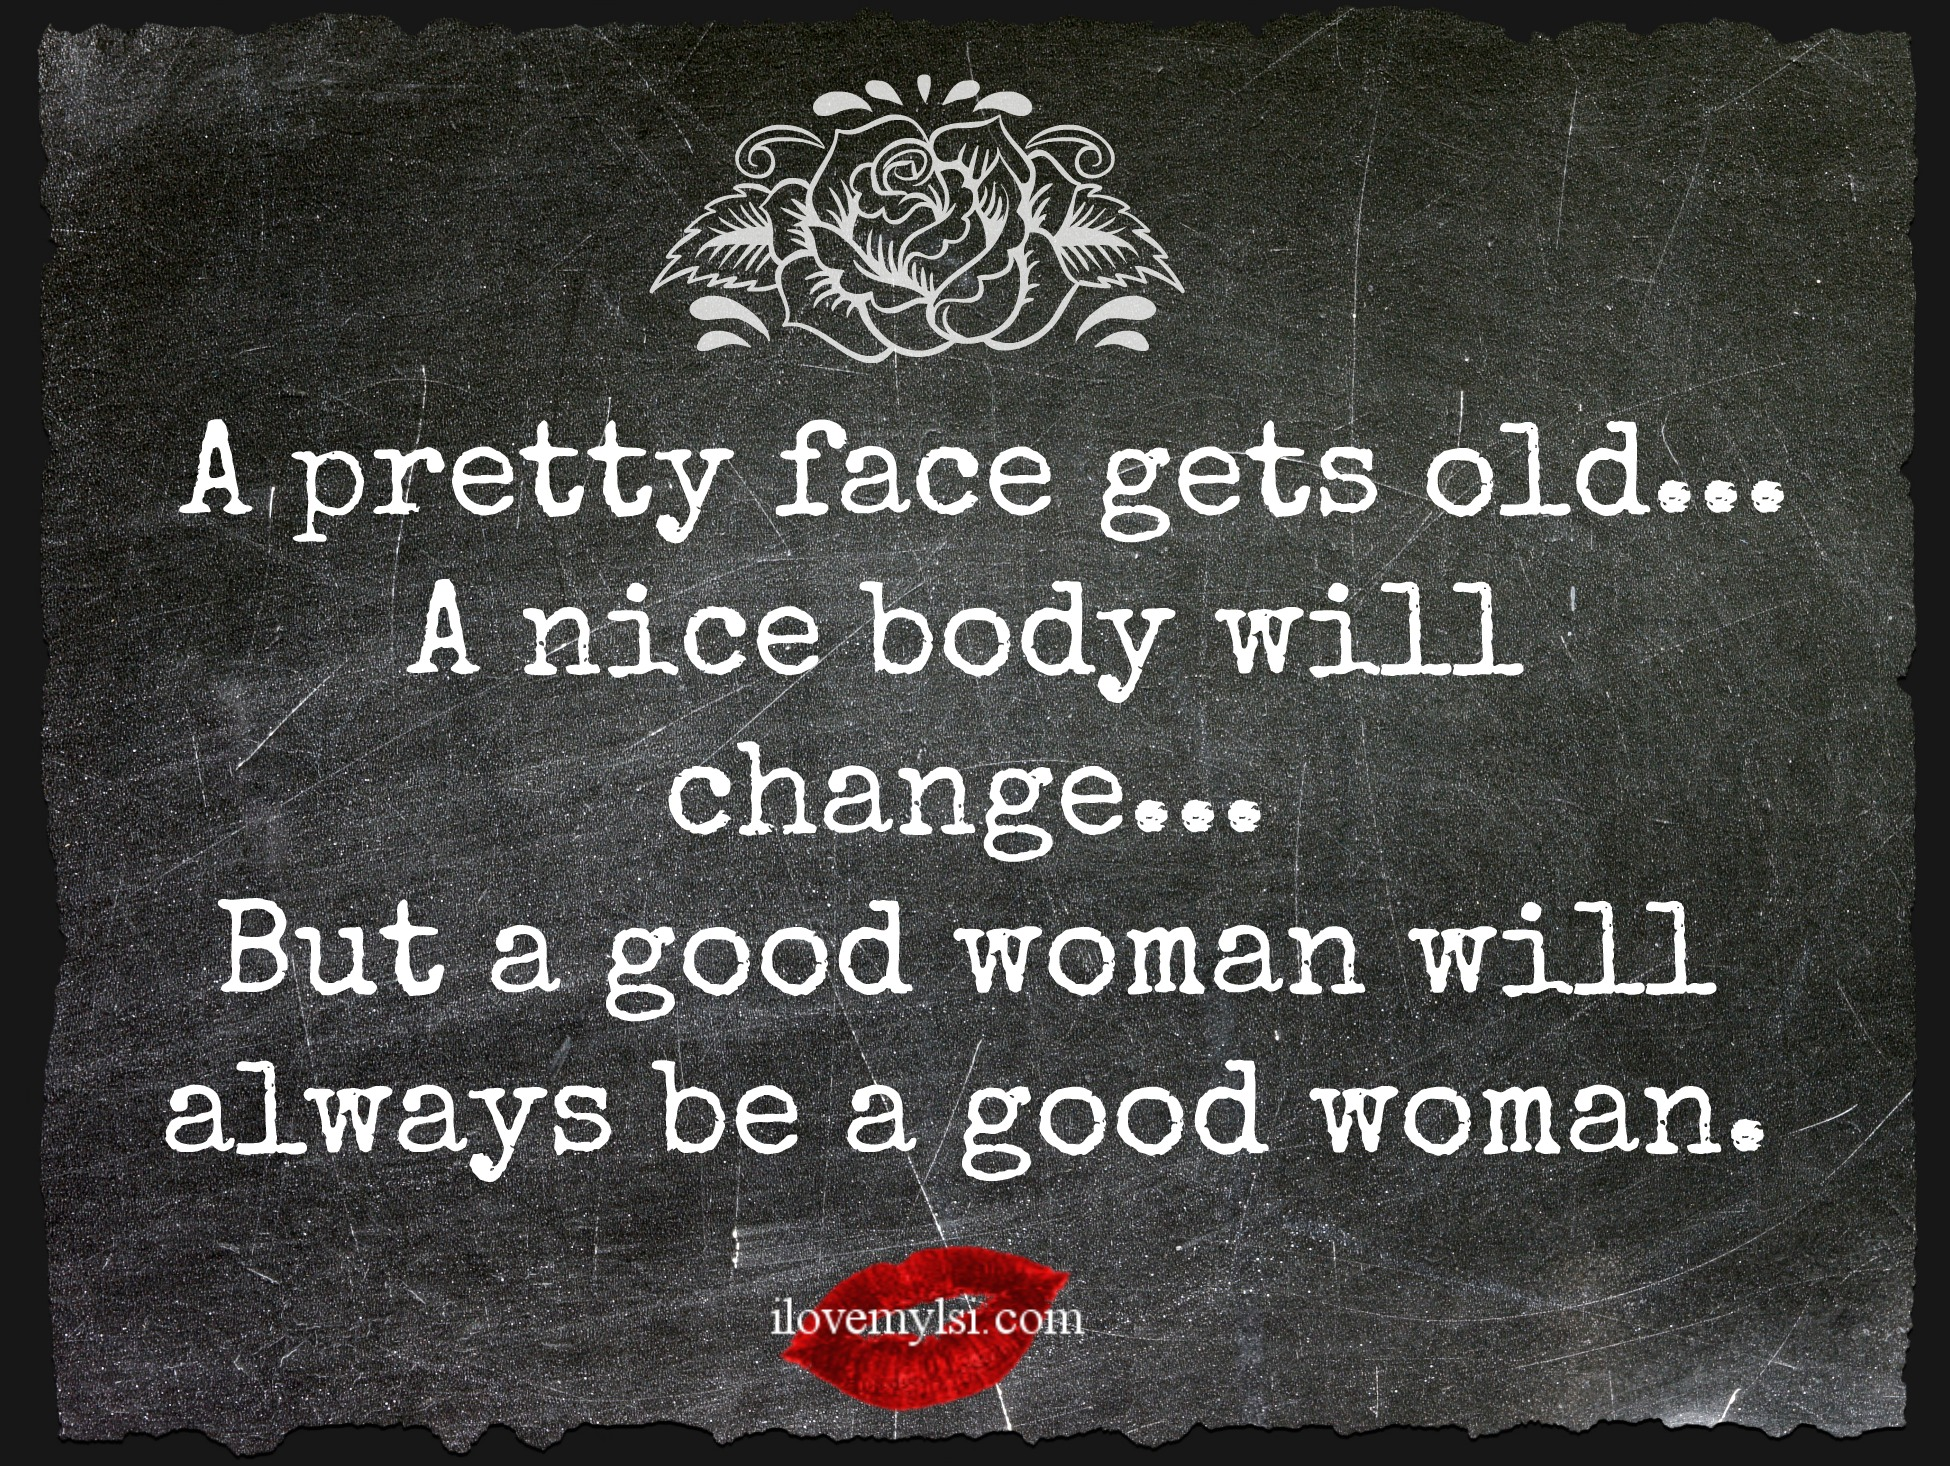 Good Woman Quotes A Good Woman Will Always Be A Good Woman I Love My Lsi